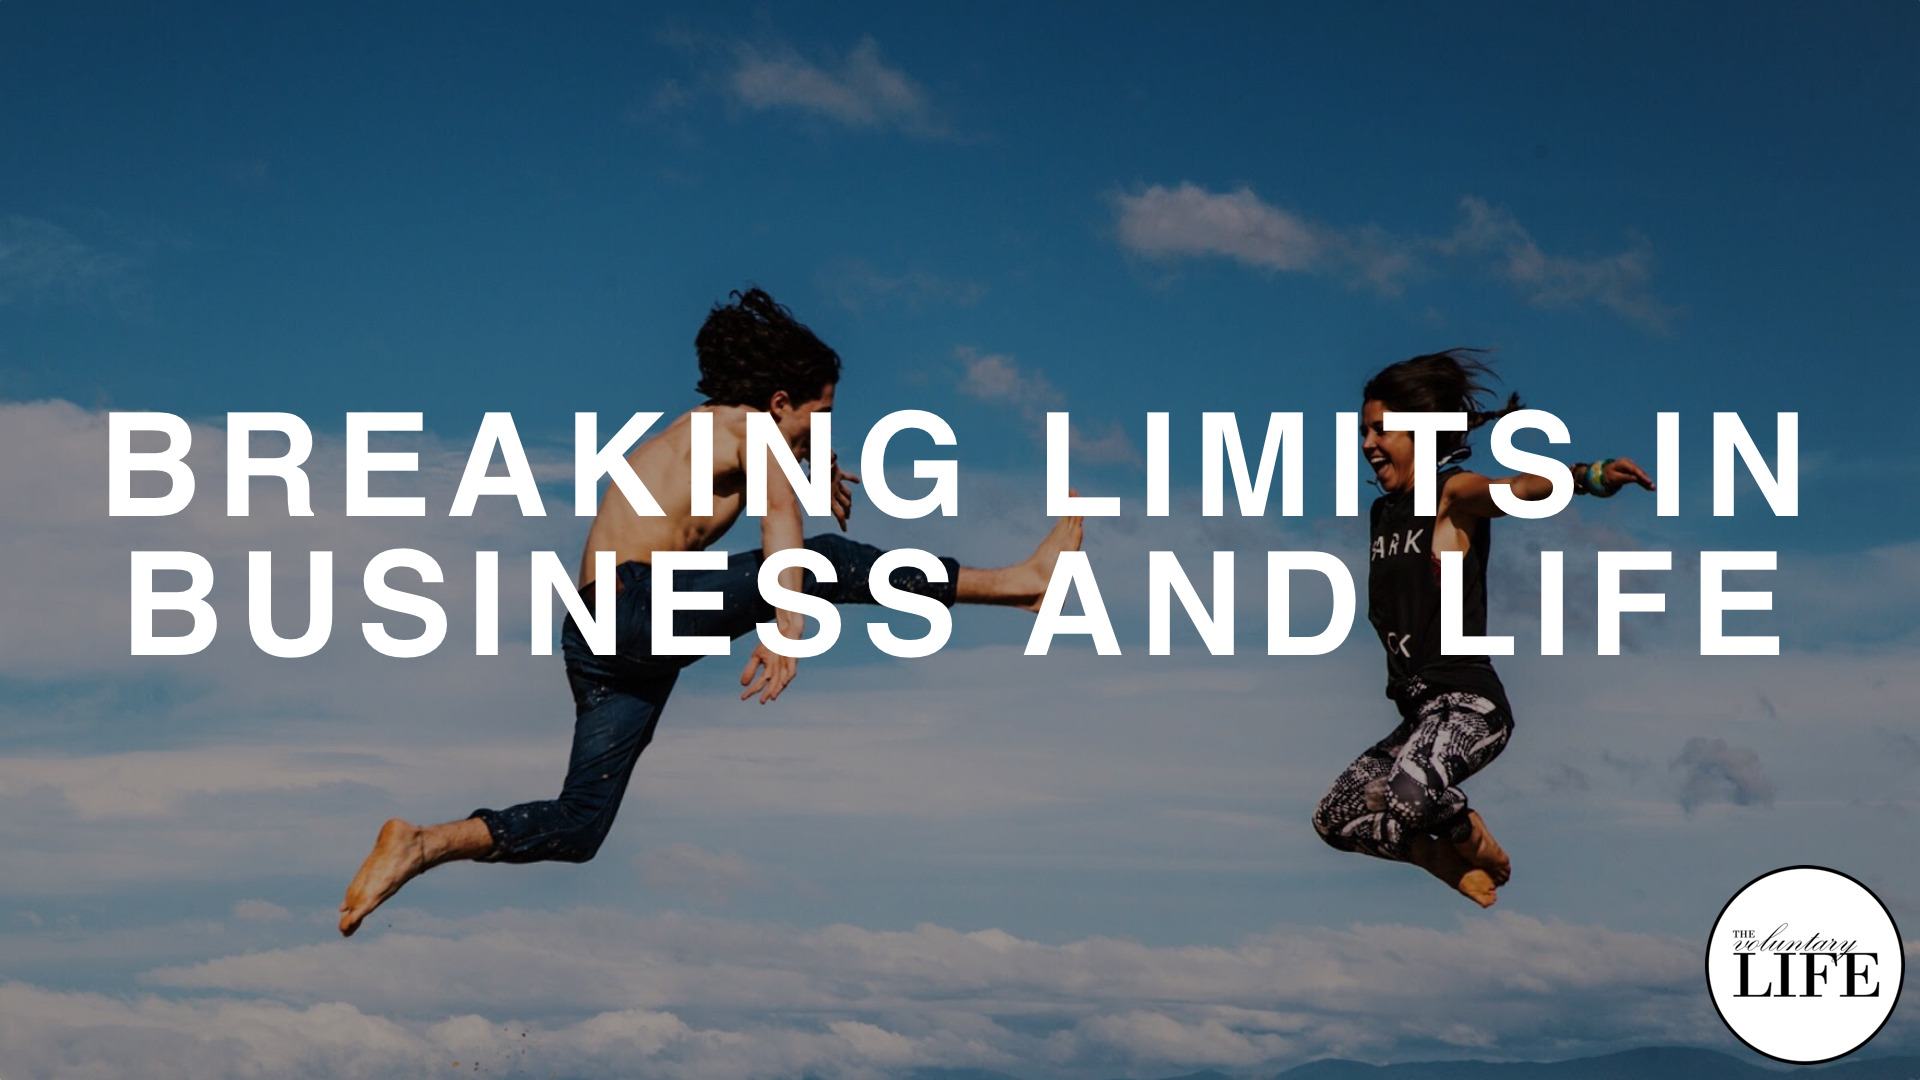 259 Breaking Limits in Business And Life